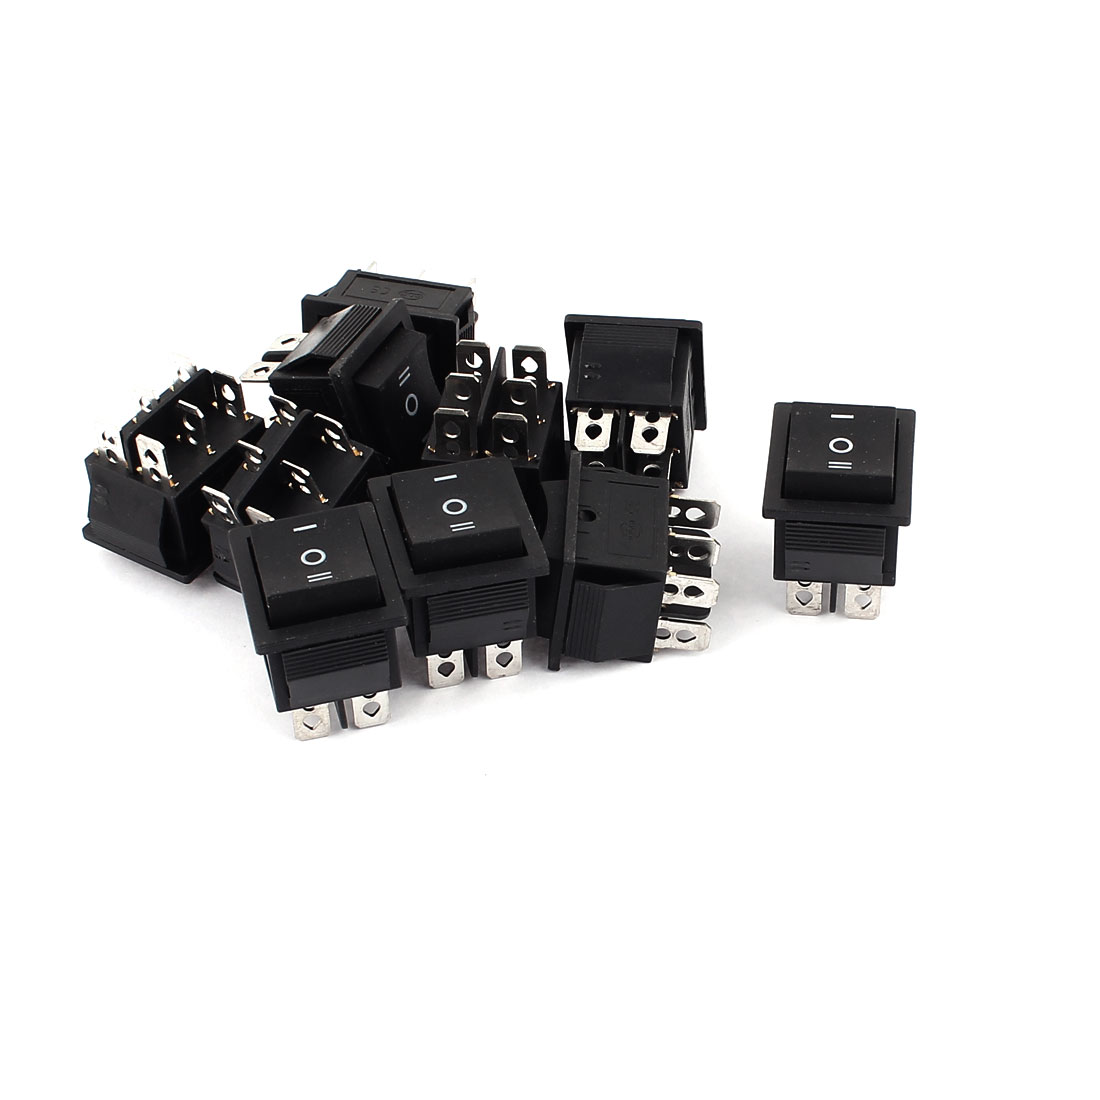 10pcs DPDT 3 Position 6 Terminal Self-Locking Rocker Boat Switch AC 250V 15A AC125V 20A